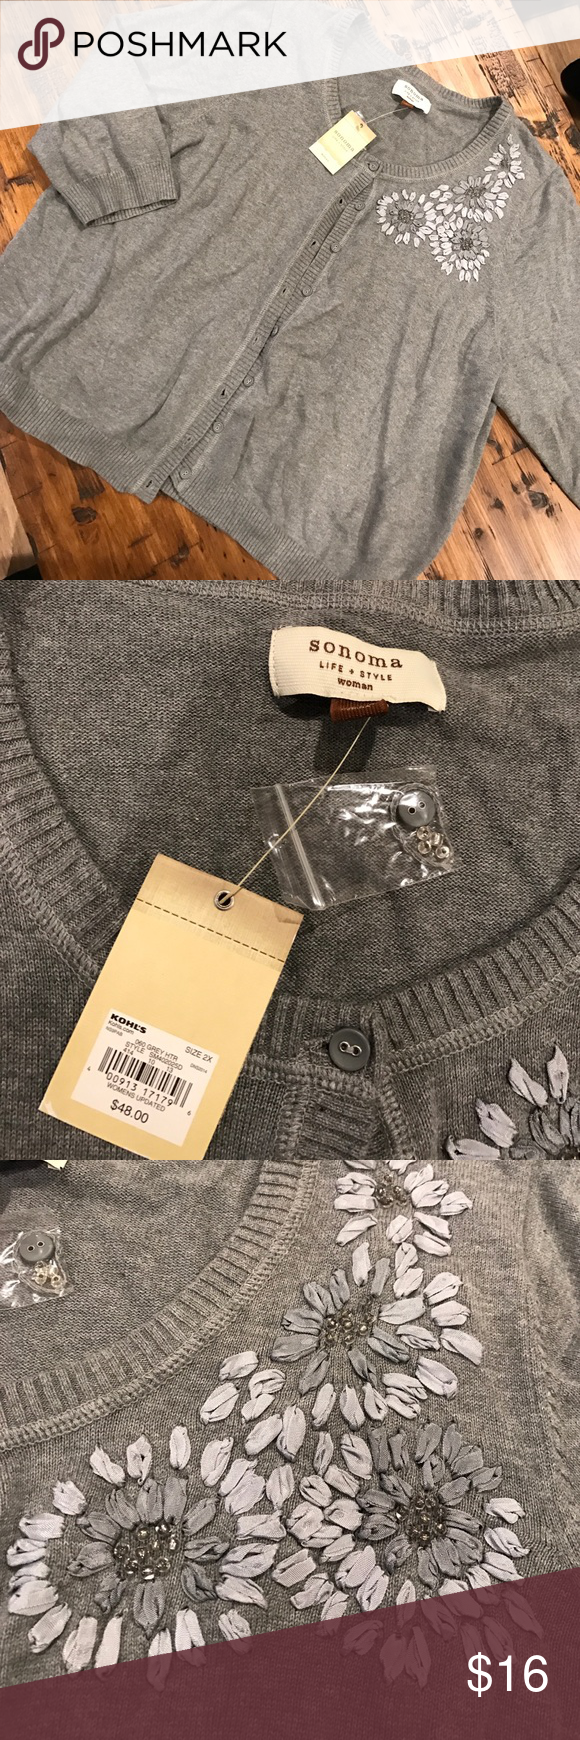 Sonoma XXL grey cardigan sweater Brand new with tags. Just needs to be washed from sitting in storage Sonoma Sweaters Cardigans